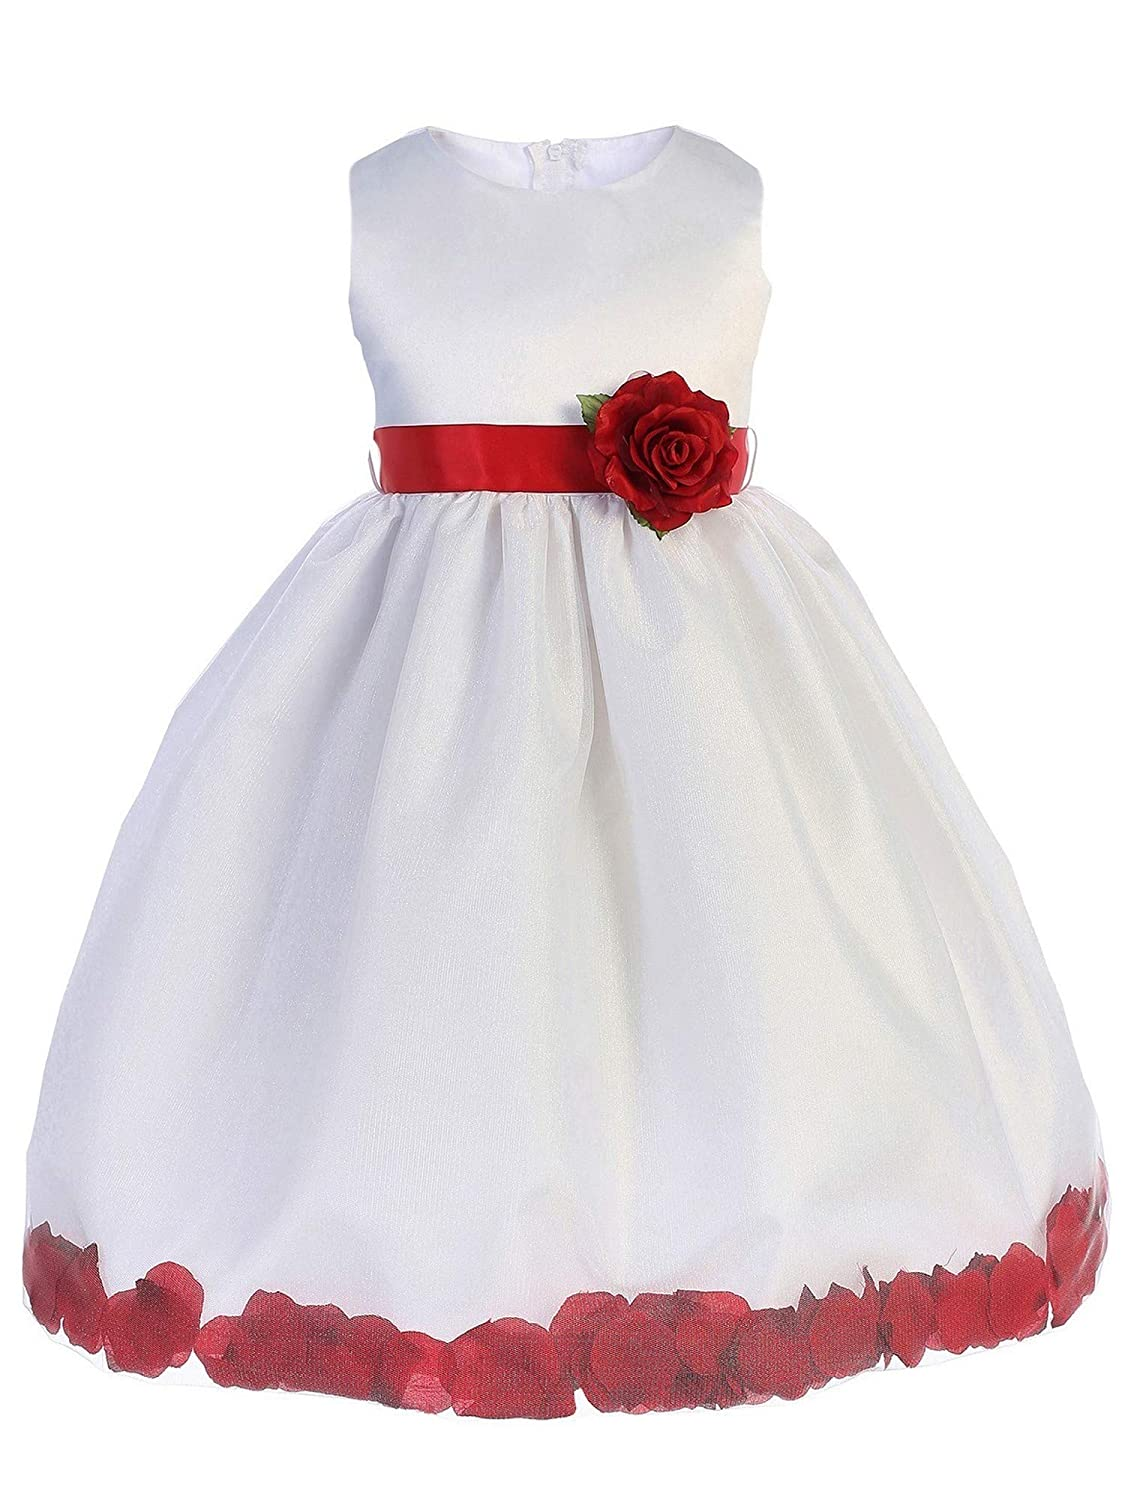 8fd800fbaff Bridesmaid Dresses In White And Red - Data Dynamic AG